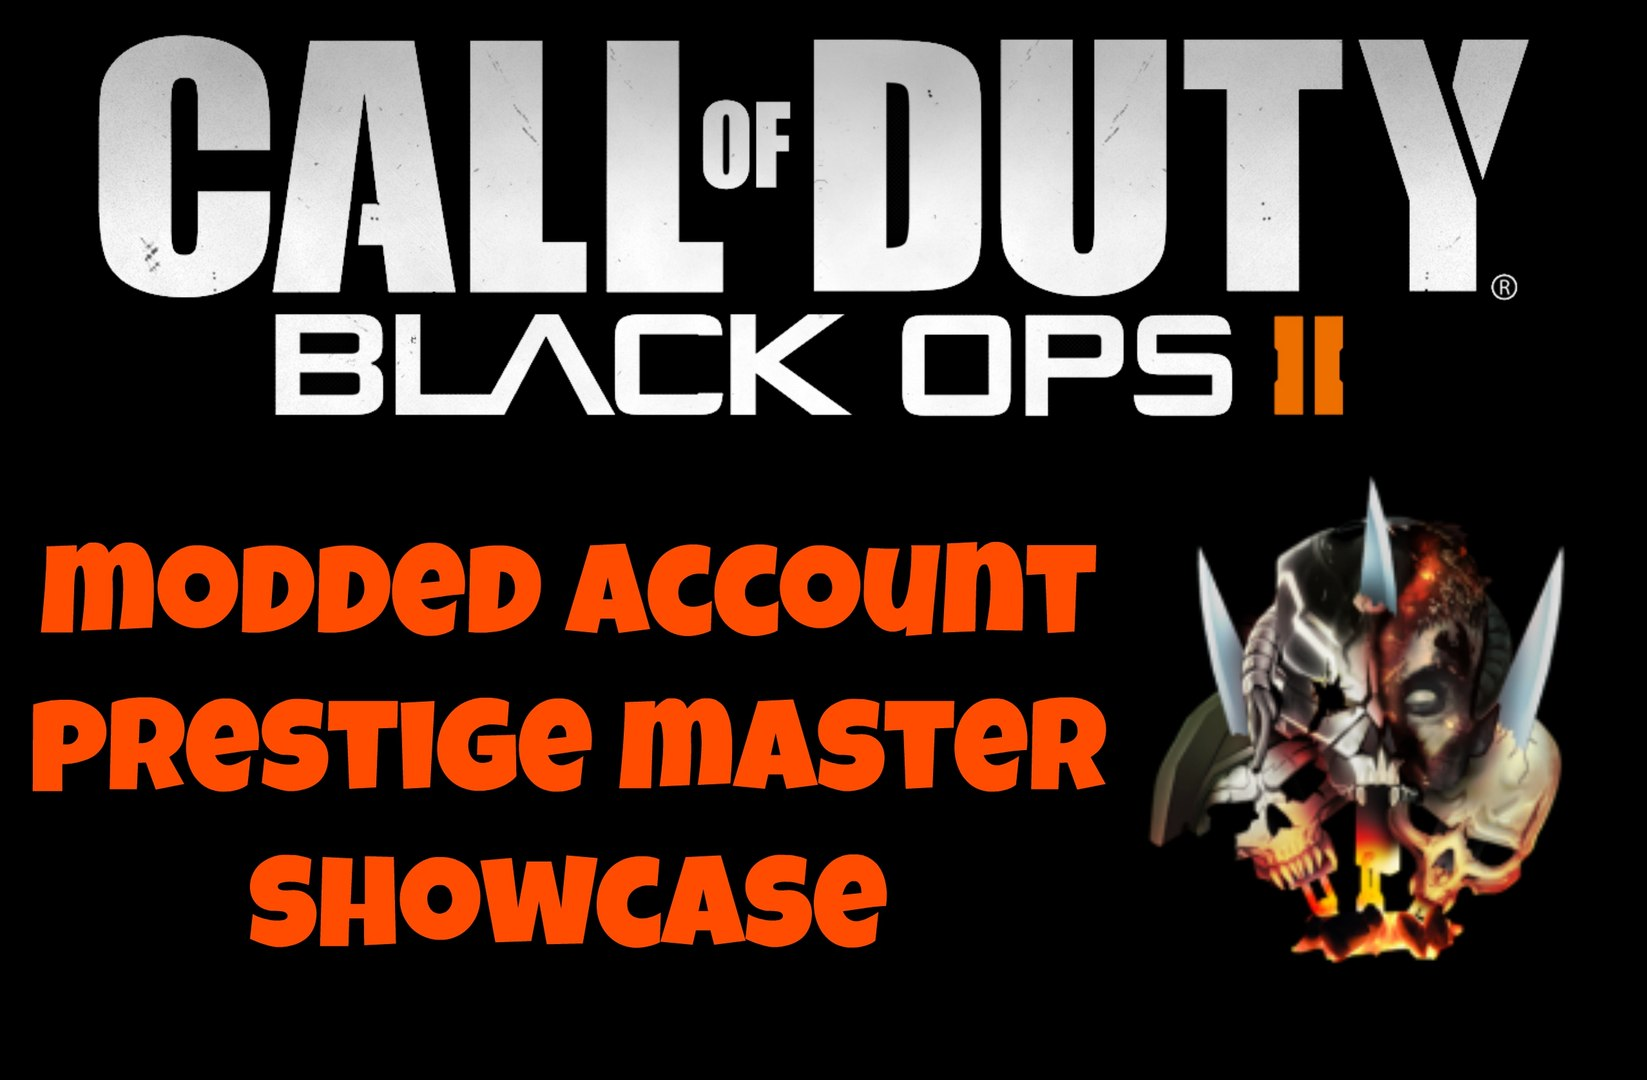 BLACK OPS 2 MODDED ACCOUNT SHOWCASE